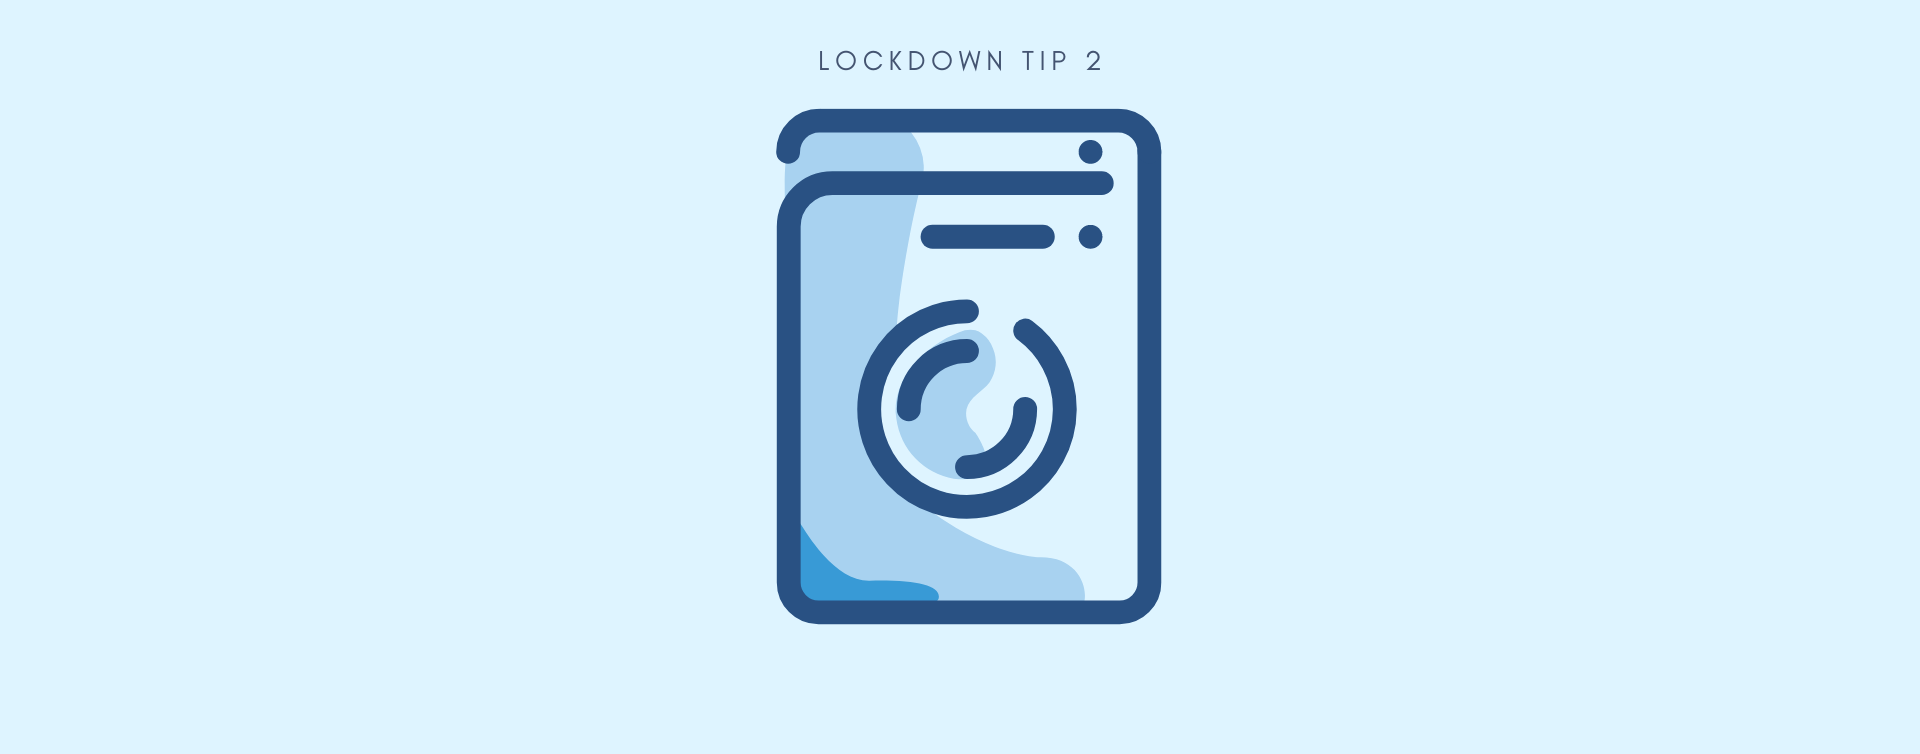 MCSA Lockdown Tip 2